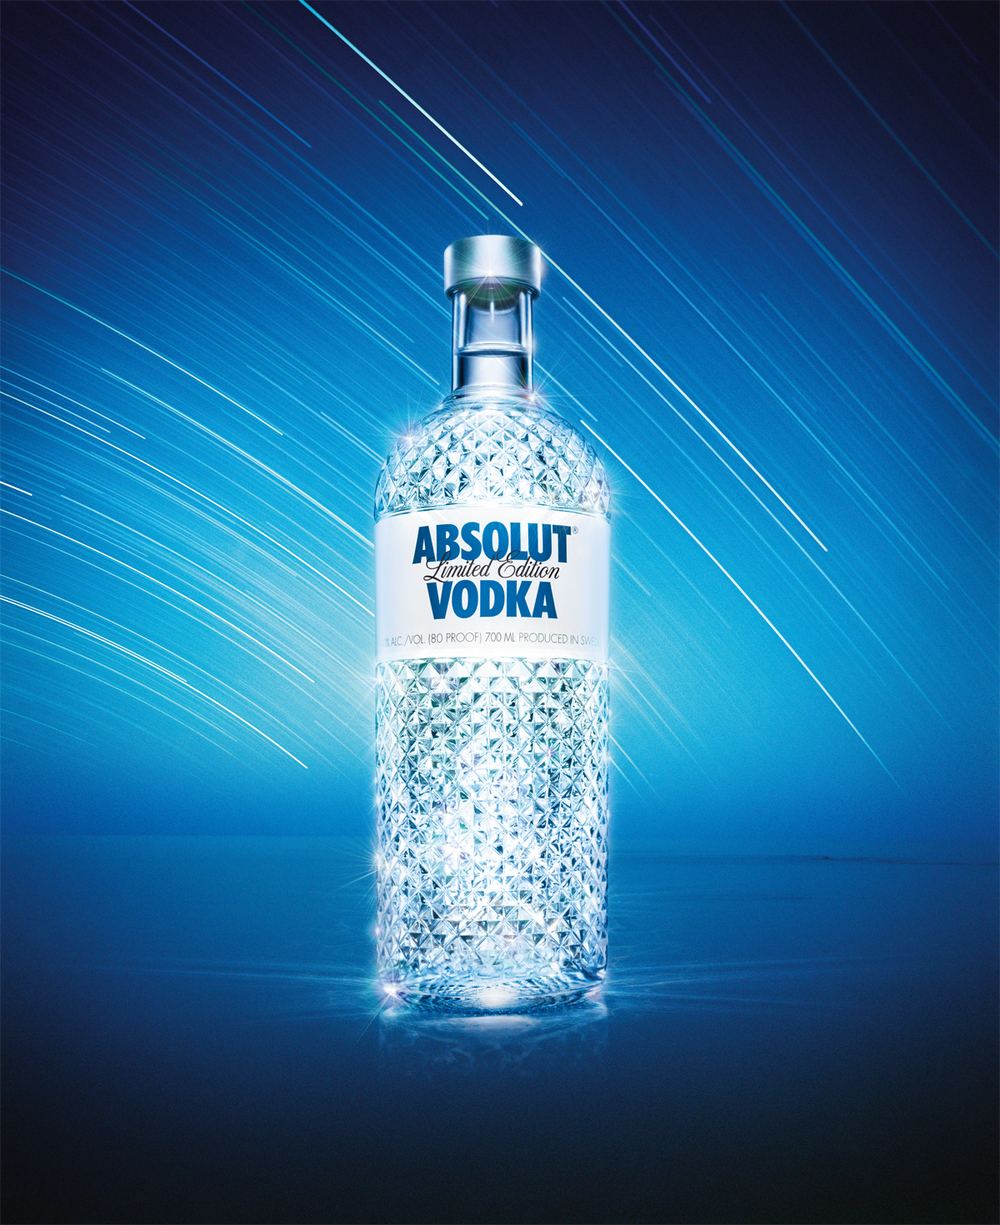 Absolut-copy.jpg